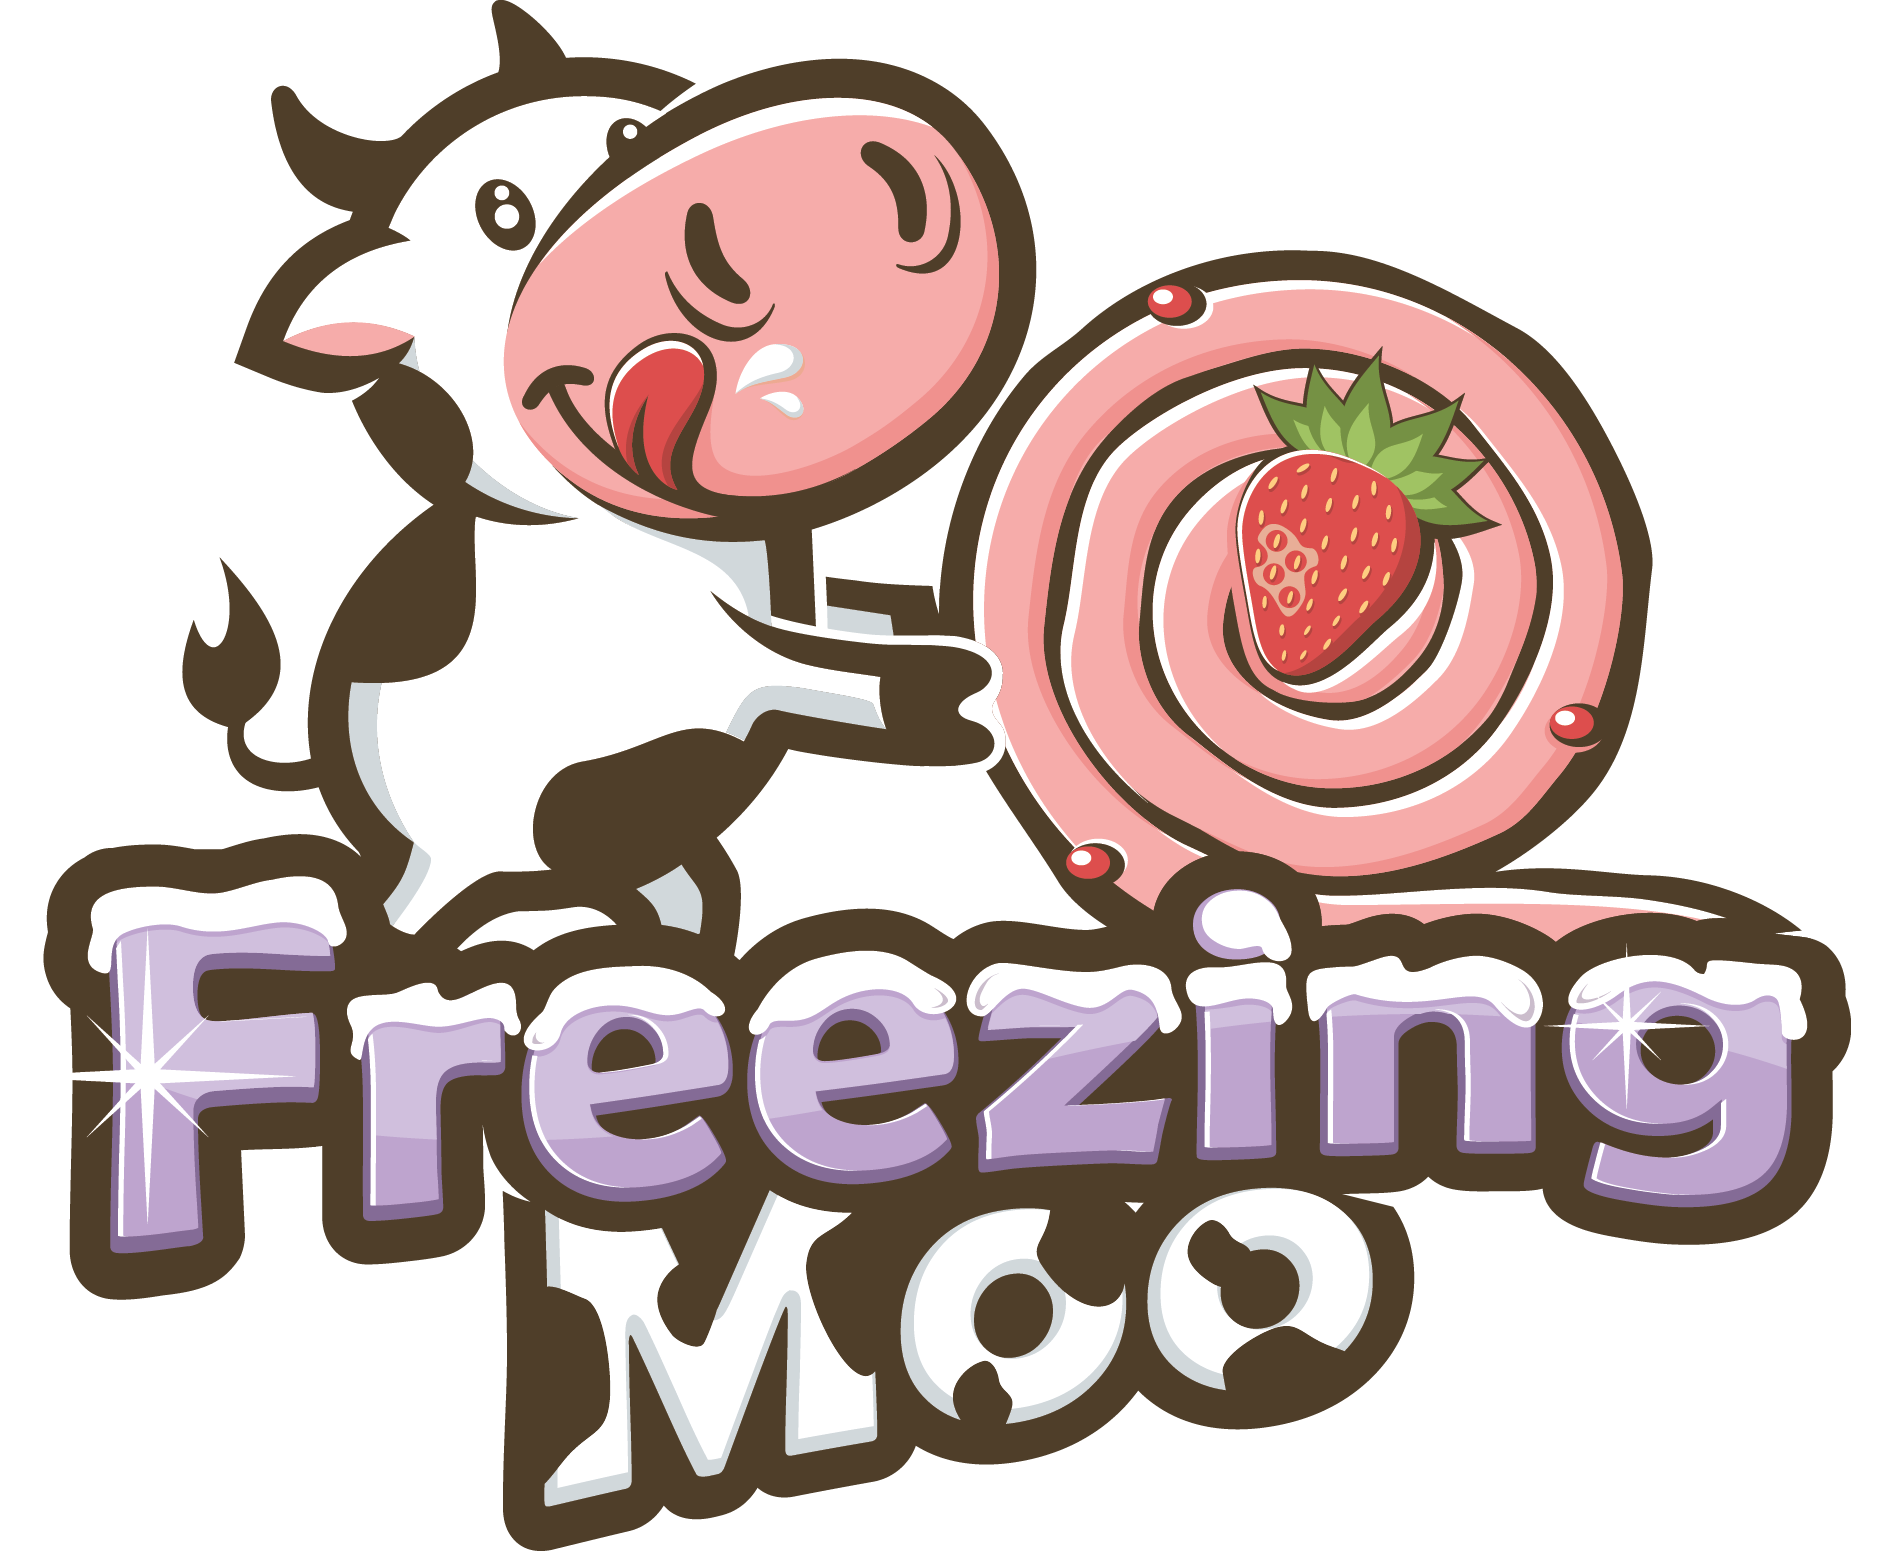 A white cow - Freezing Moo Rolling Ice Cream